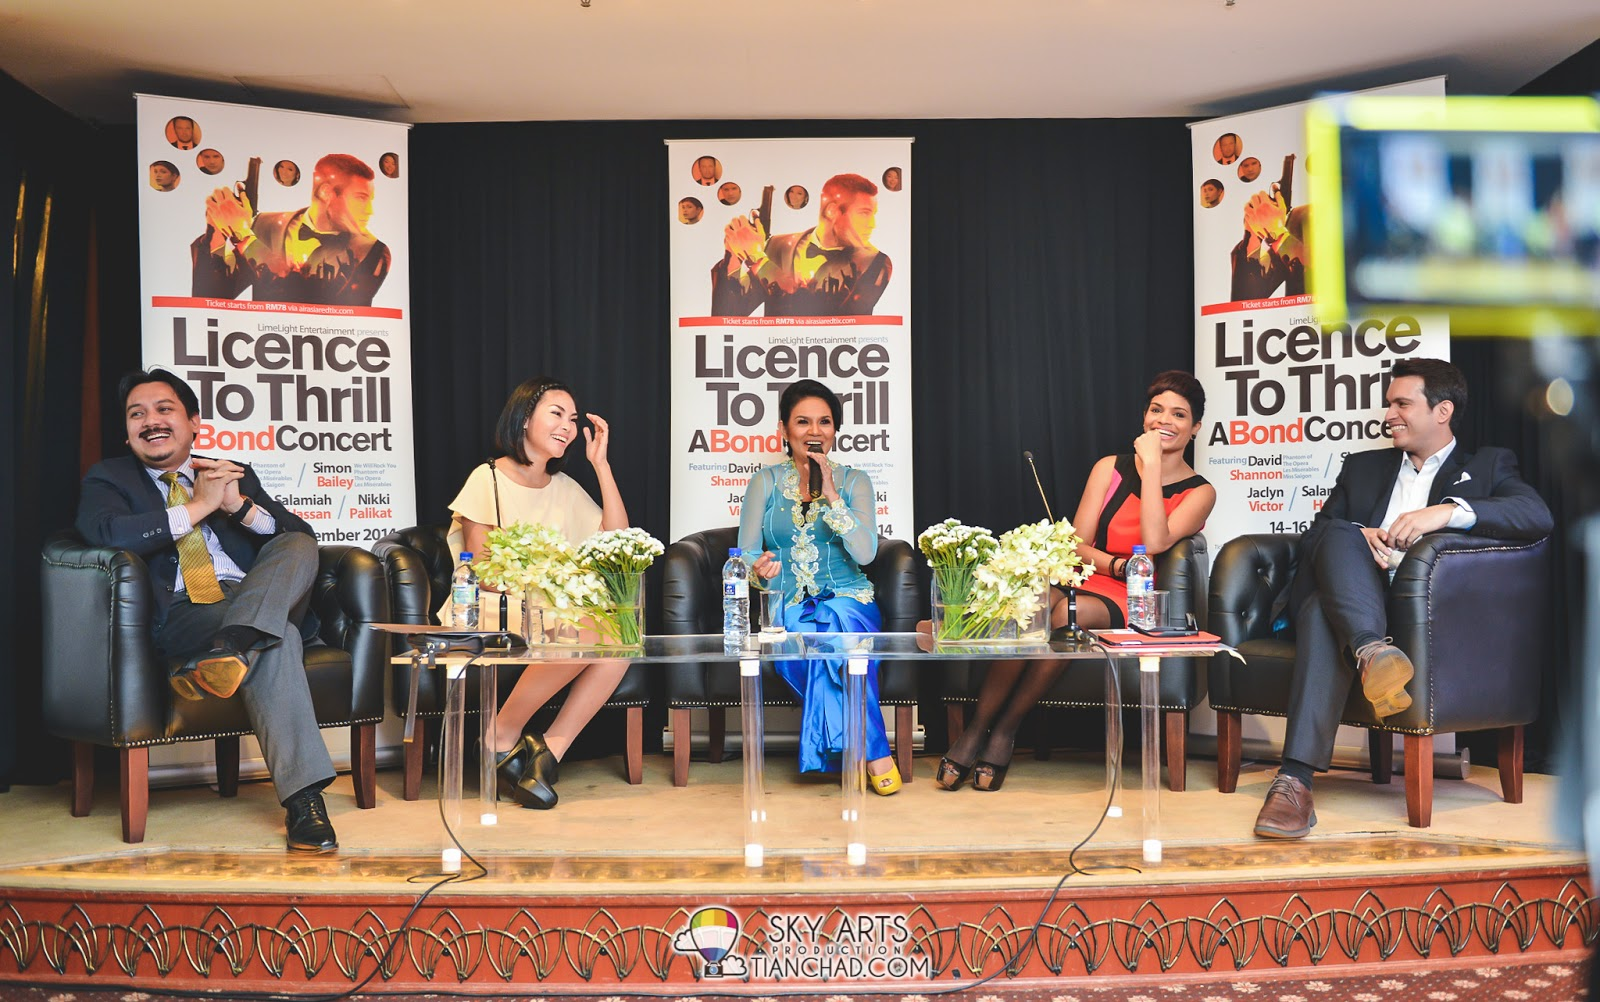 Candid photo taken during Licence To Thrill: A Bond Concert Press Conference